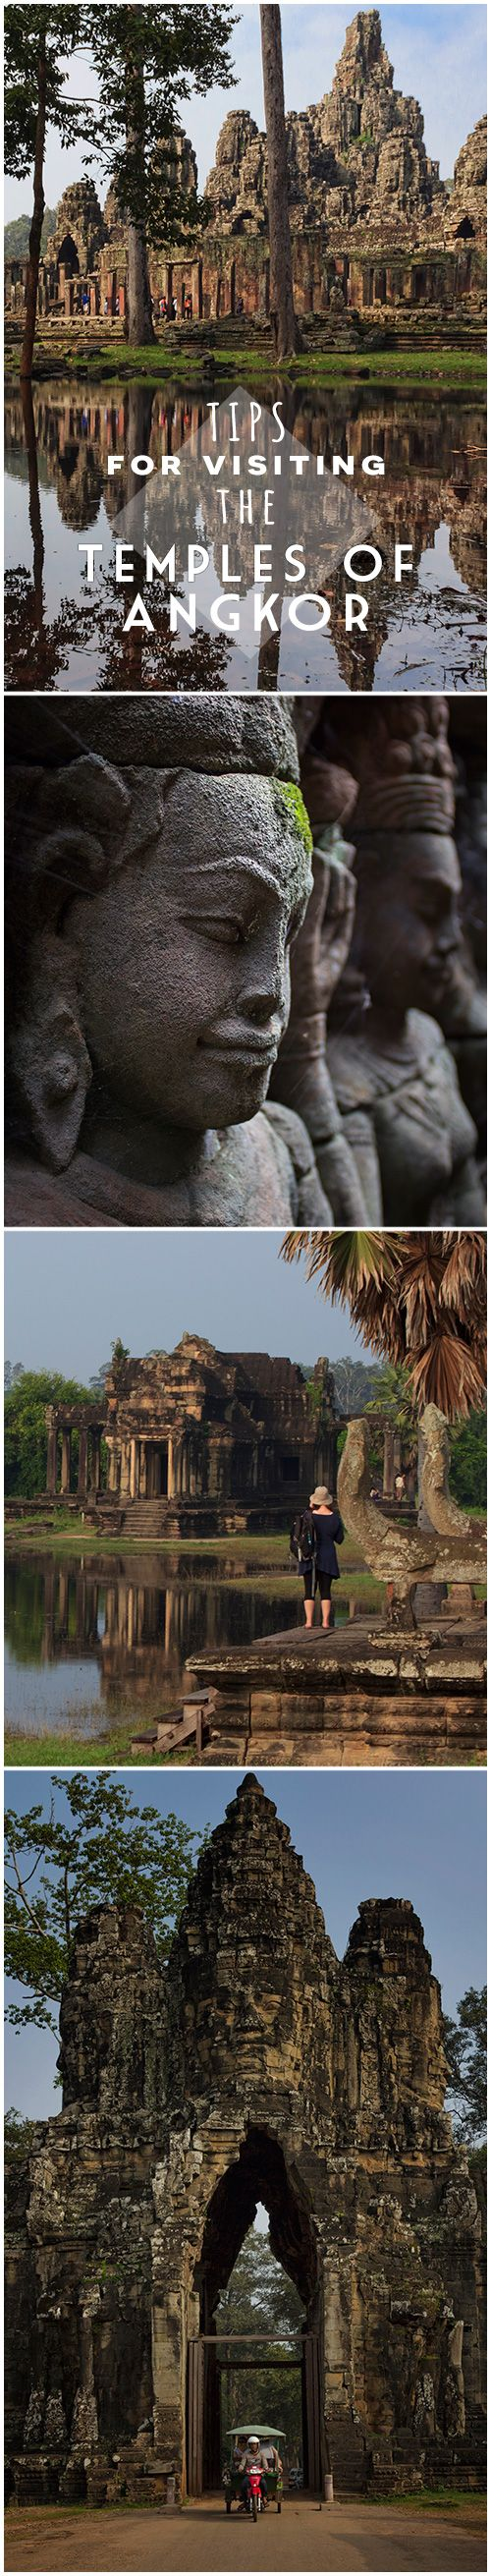 Tips and suggestions for planning at visit to the Temples of Angkor, Cambodia. #traveltips